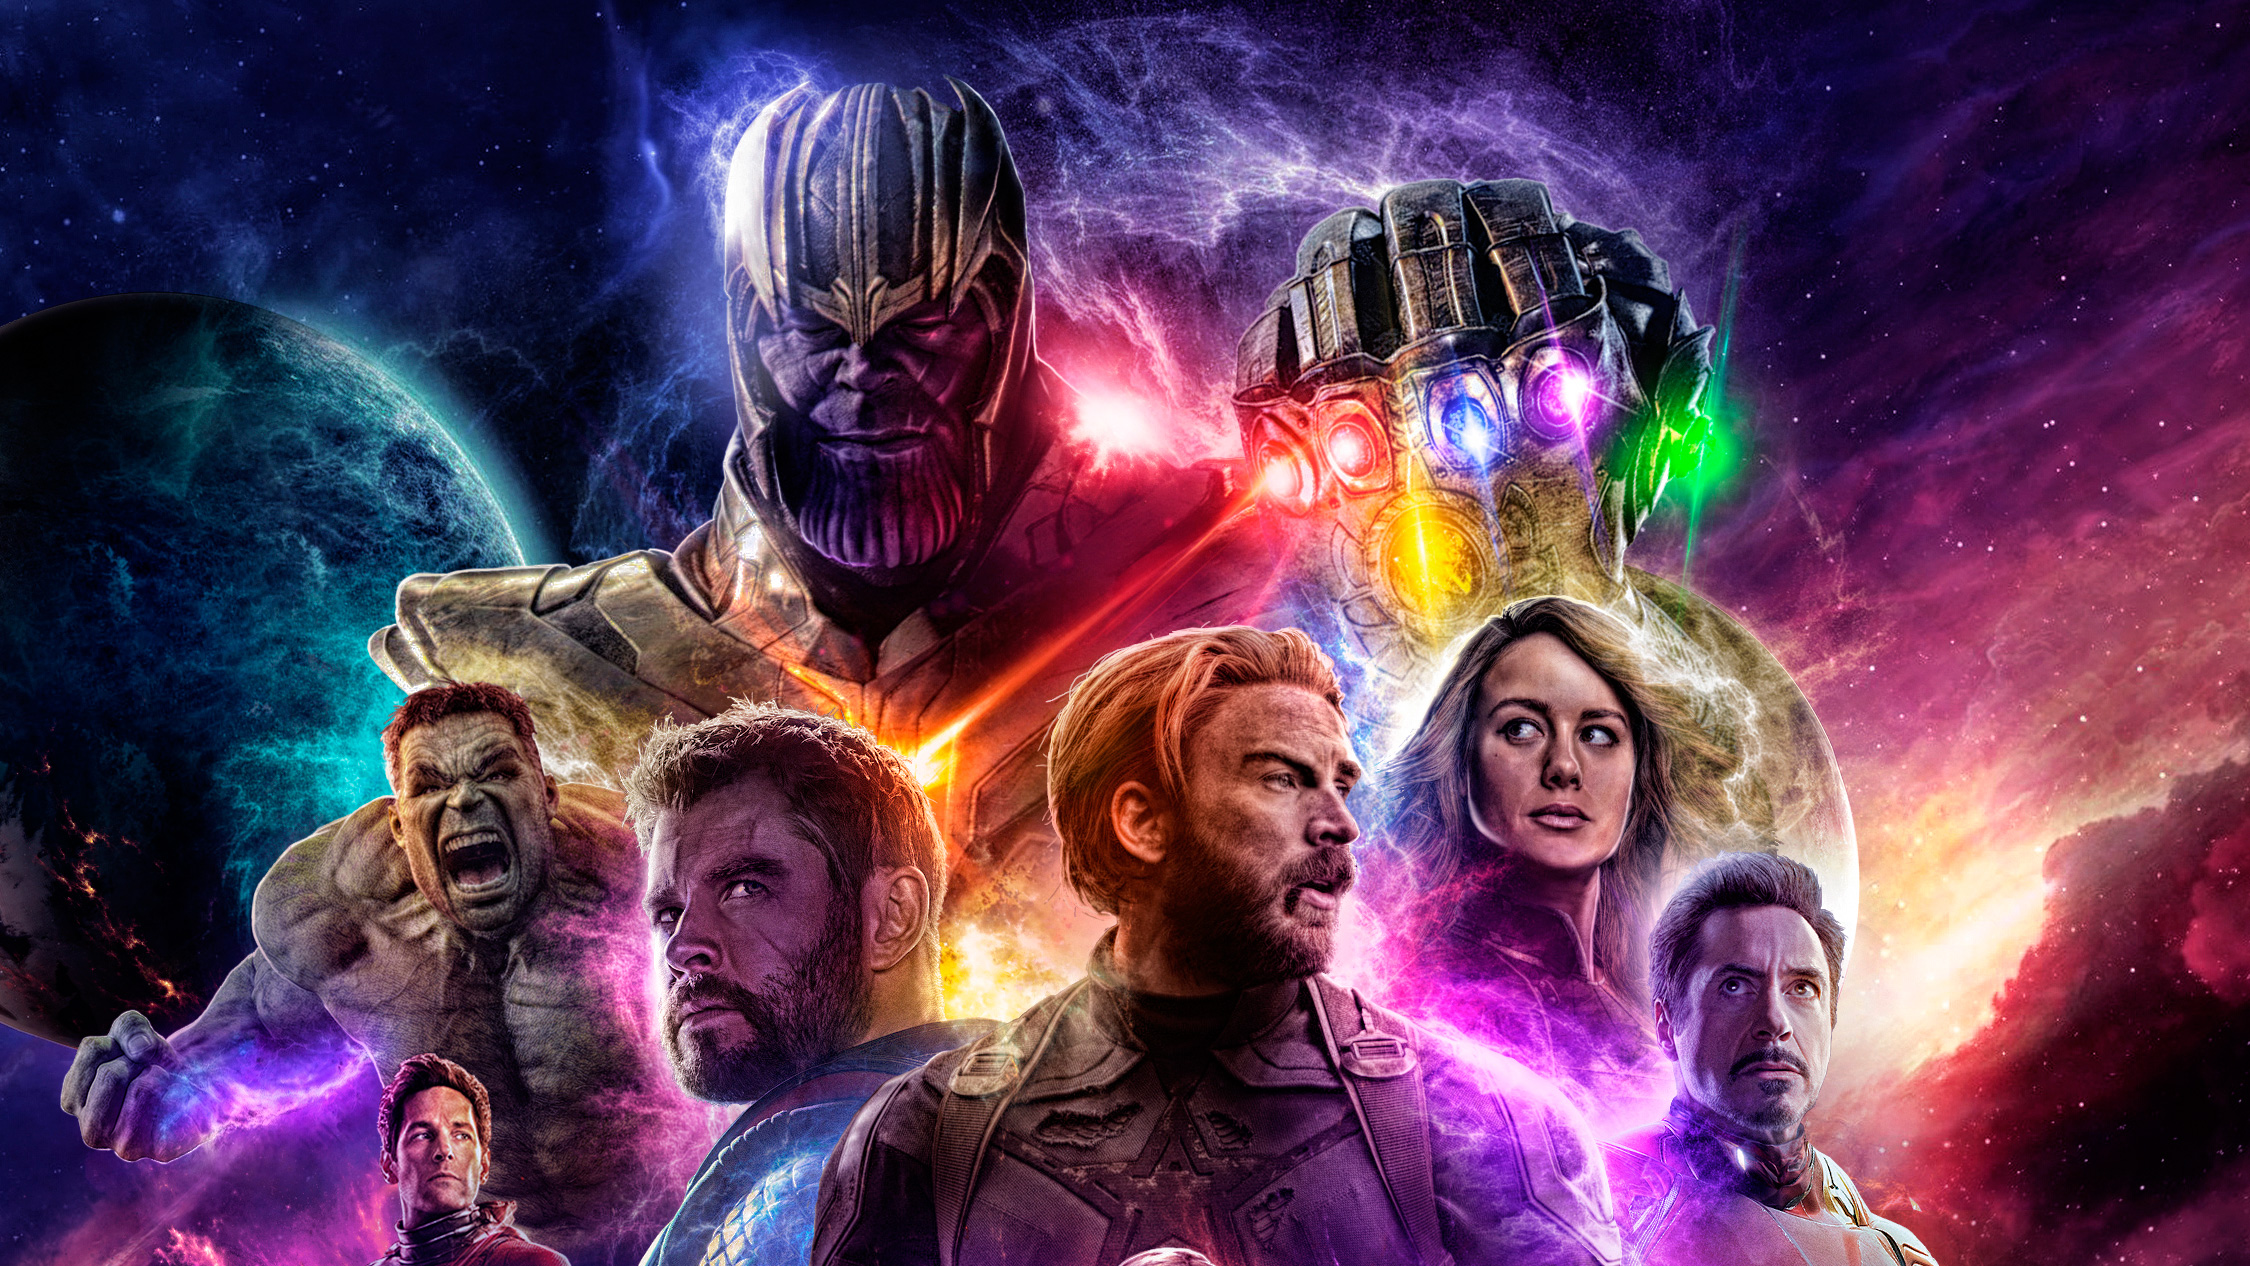 1600x1200 avengers 4 end game 2019 1600x1200 resolution hd